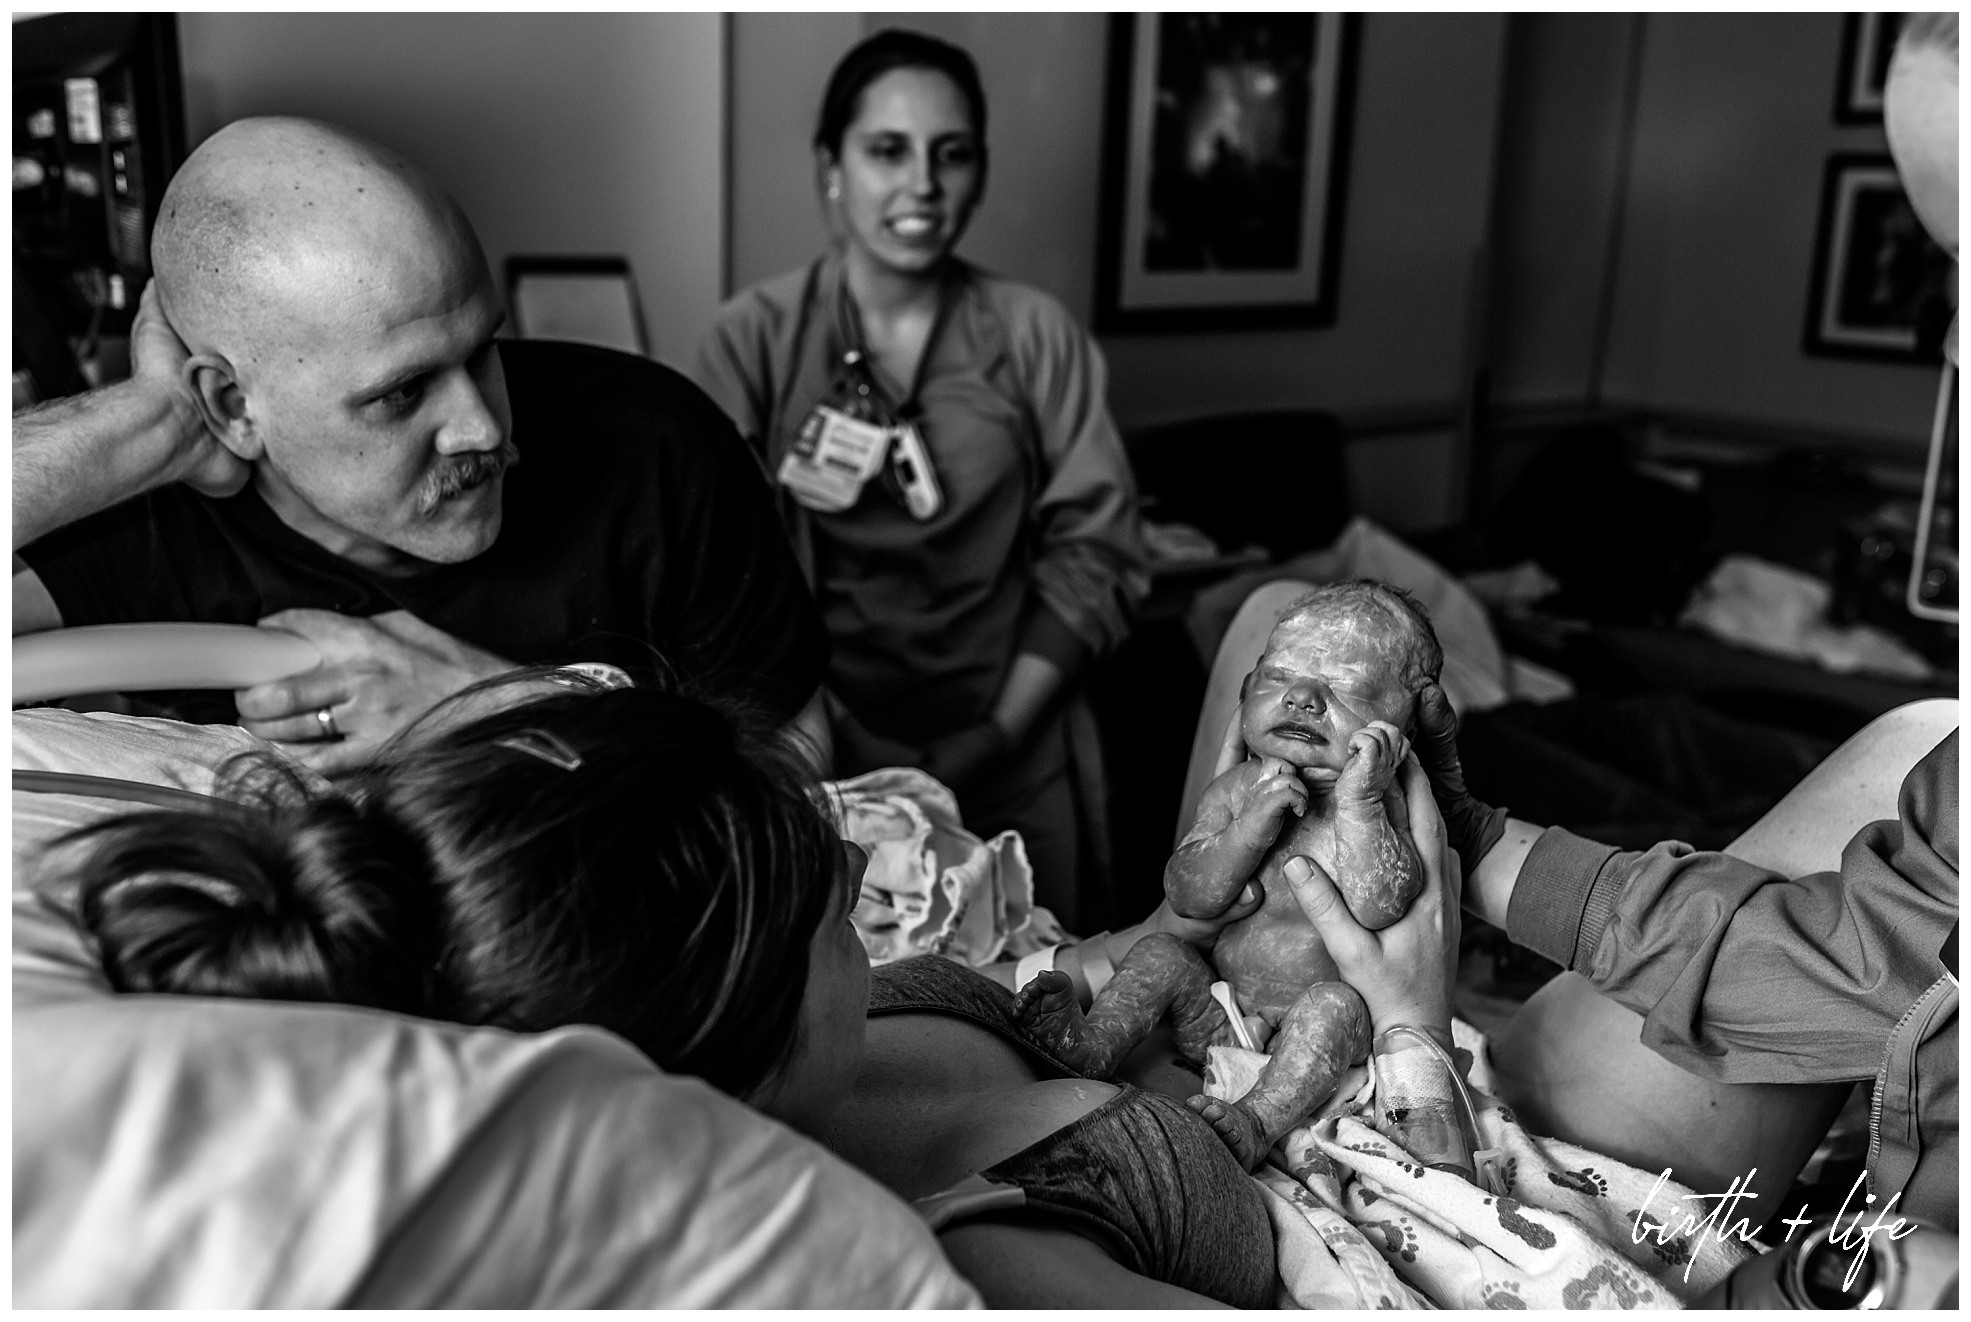 dfw-birth-and-life-photography-family-photojournalism-documentary-birth-storyacclaim-midwives-clark036.jpg